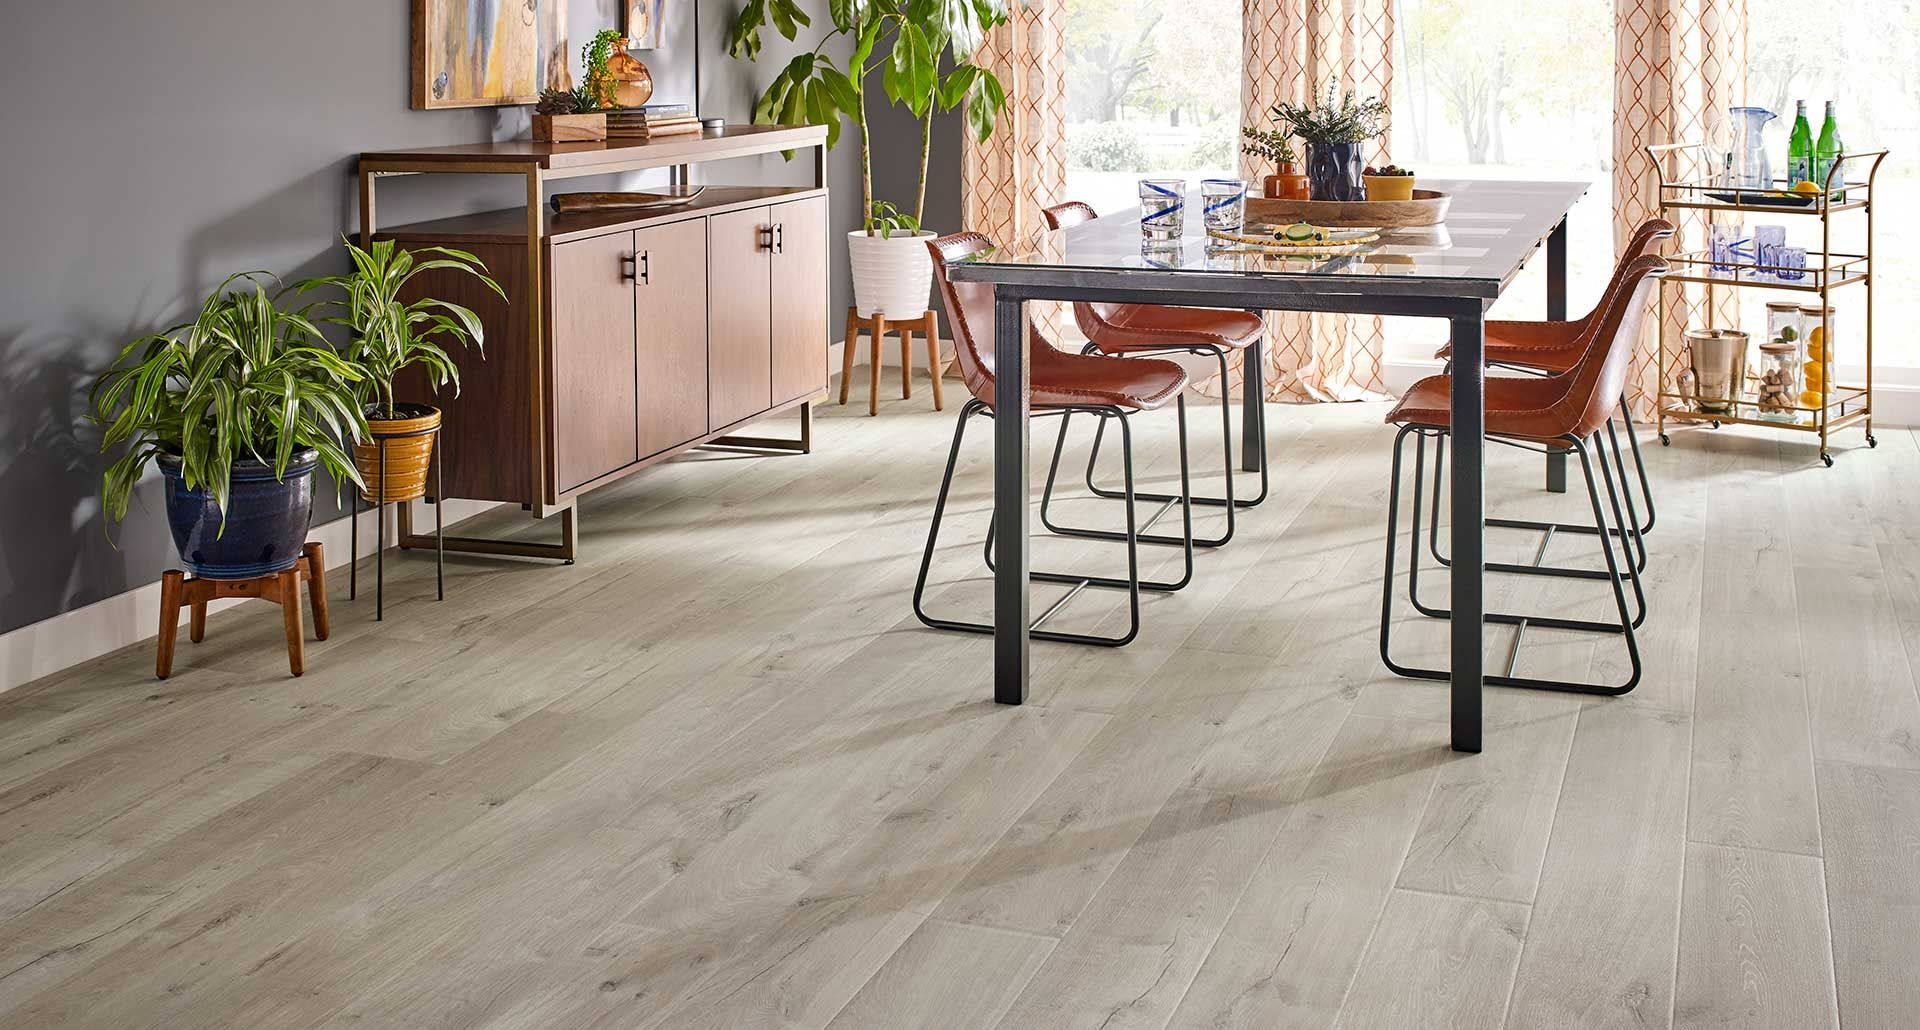 Graceland Oak Natural Authentic Laminate Floor Grey Color Oak Wood Finish 10mm 1 Strip Plank Laminate Flooring Easy T Pergo Outlast Pergo Flooring Flooring